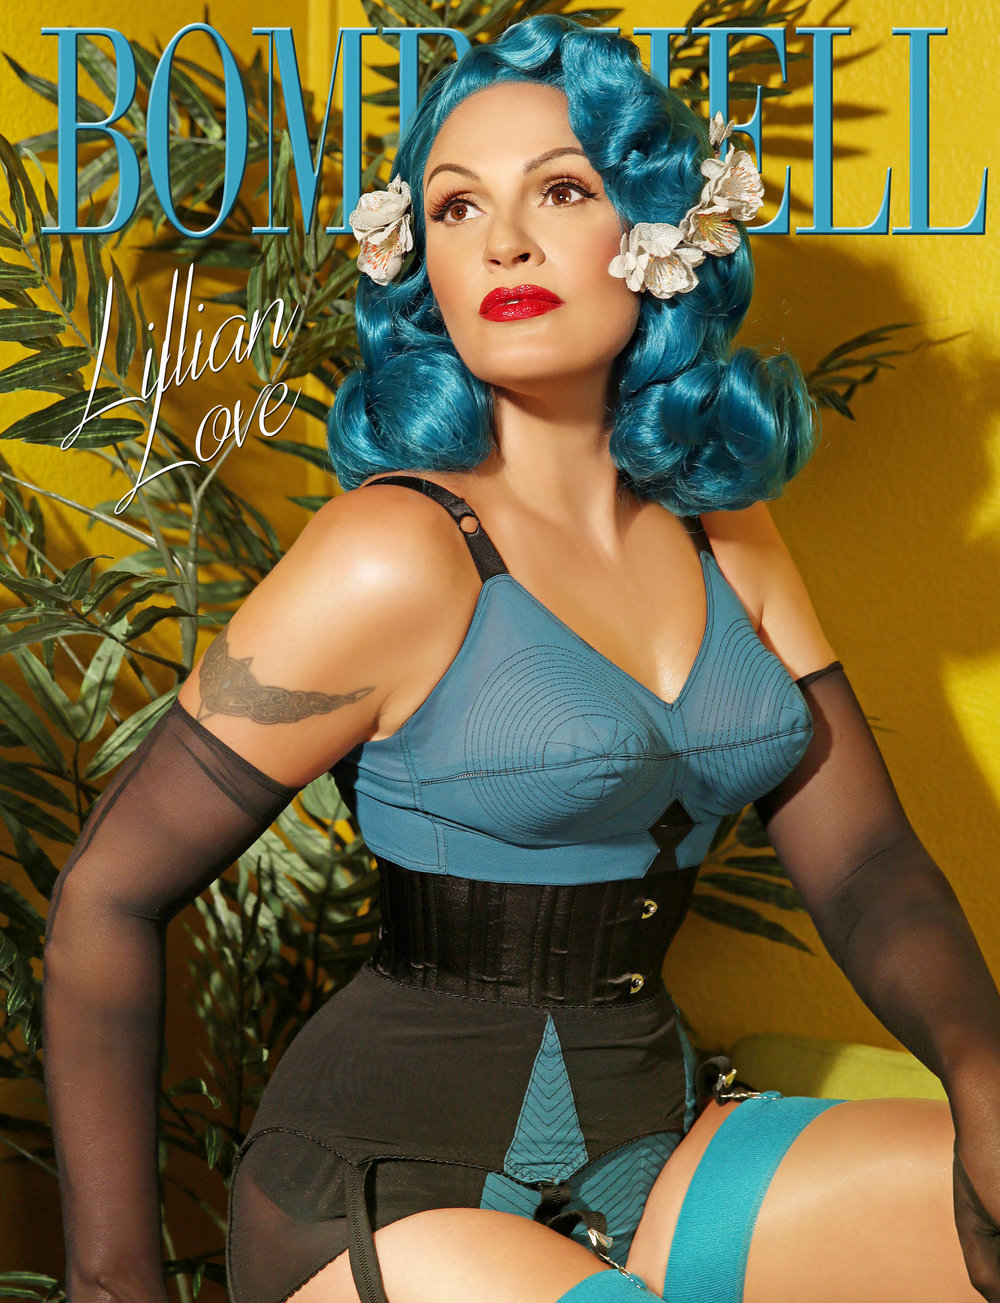 BOMBSHELL Magazine September BOOK 1 Lilian Love Cover.jpg